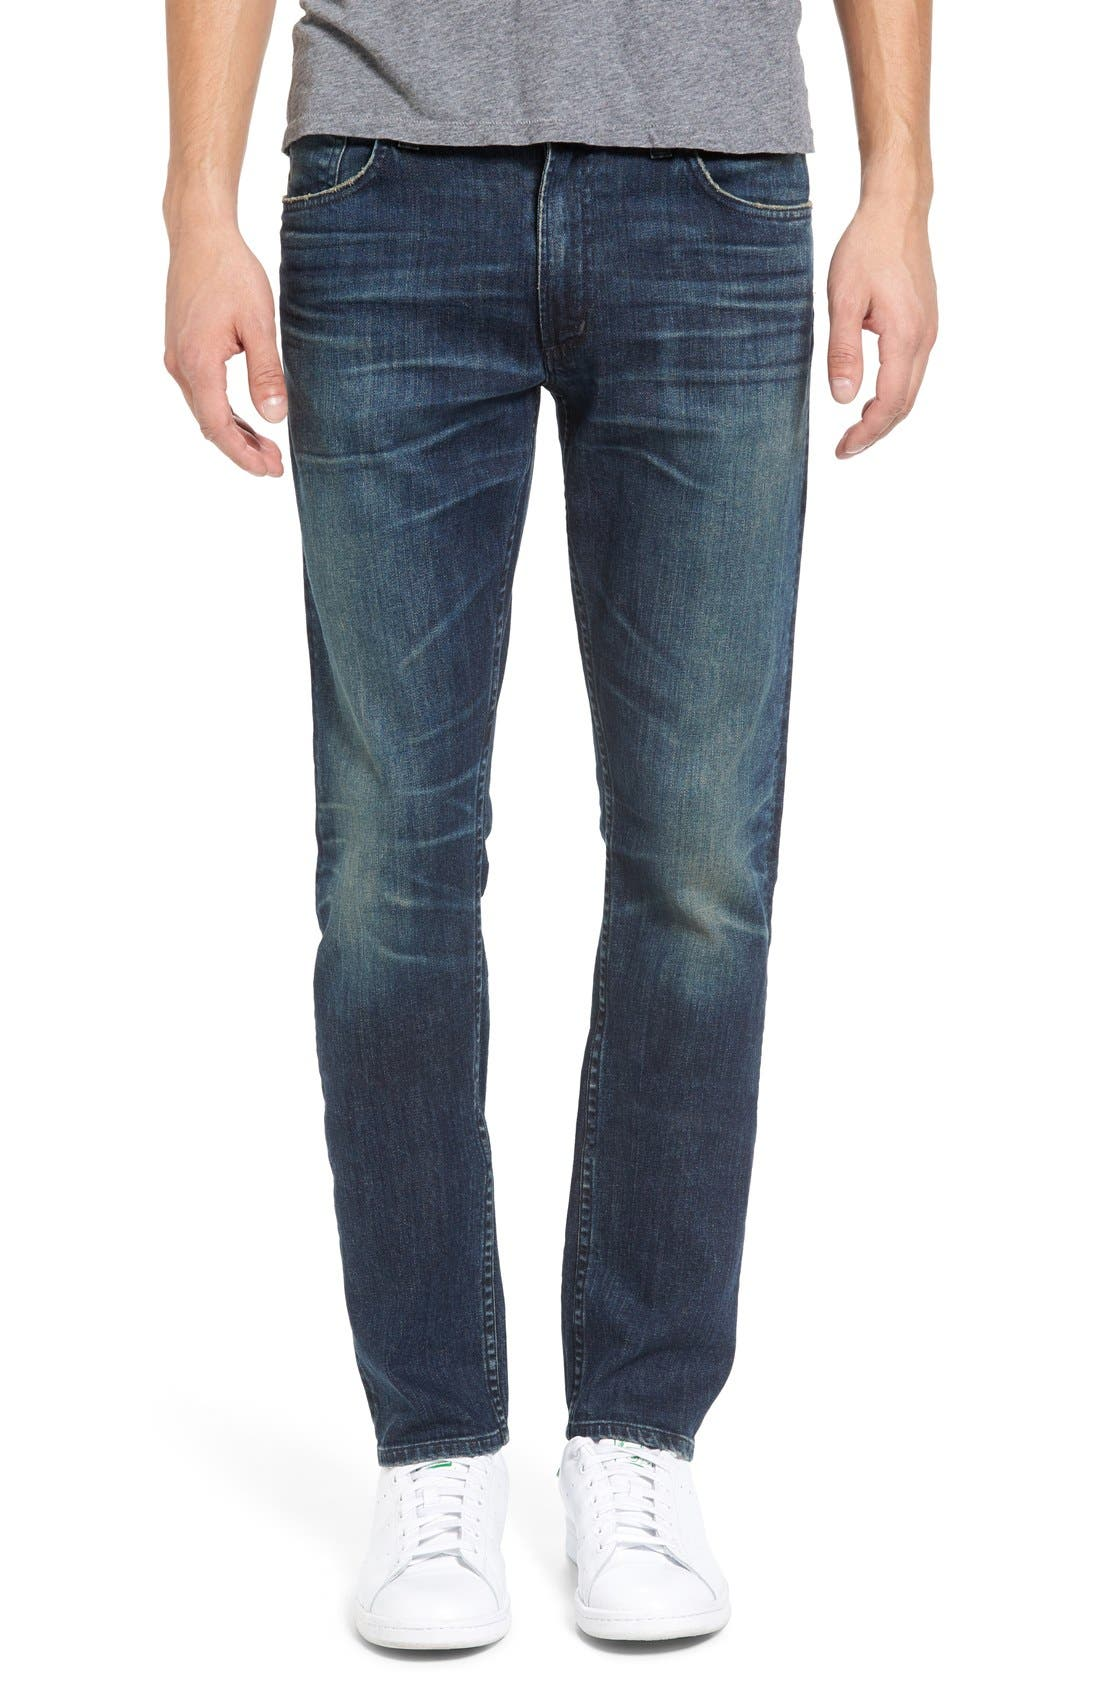 Bowery Slim Fit Jeans,                         Main,                         color, Wild